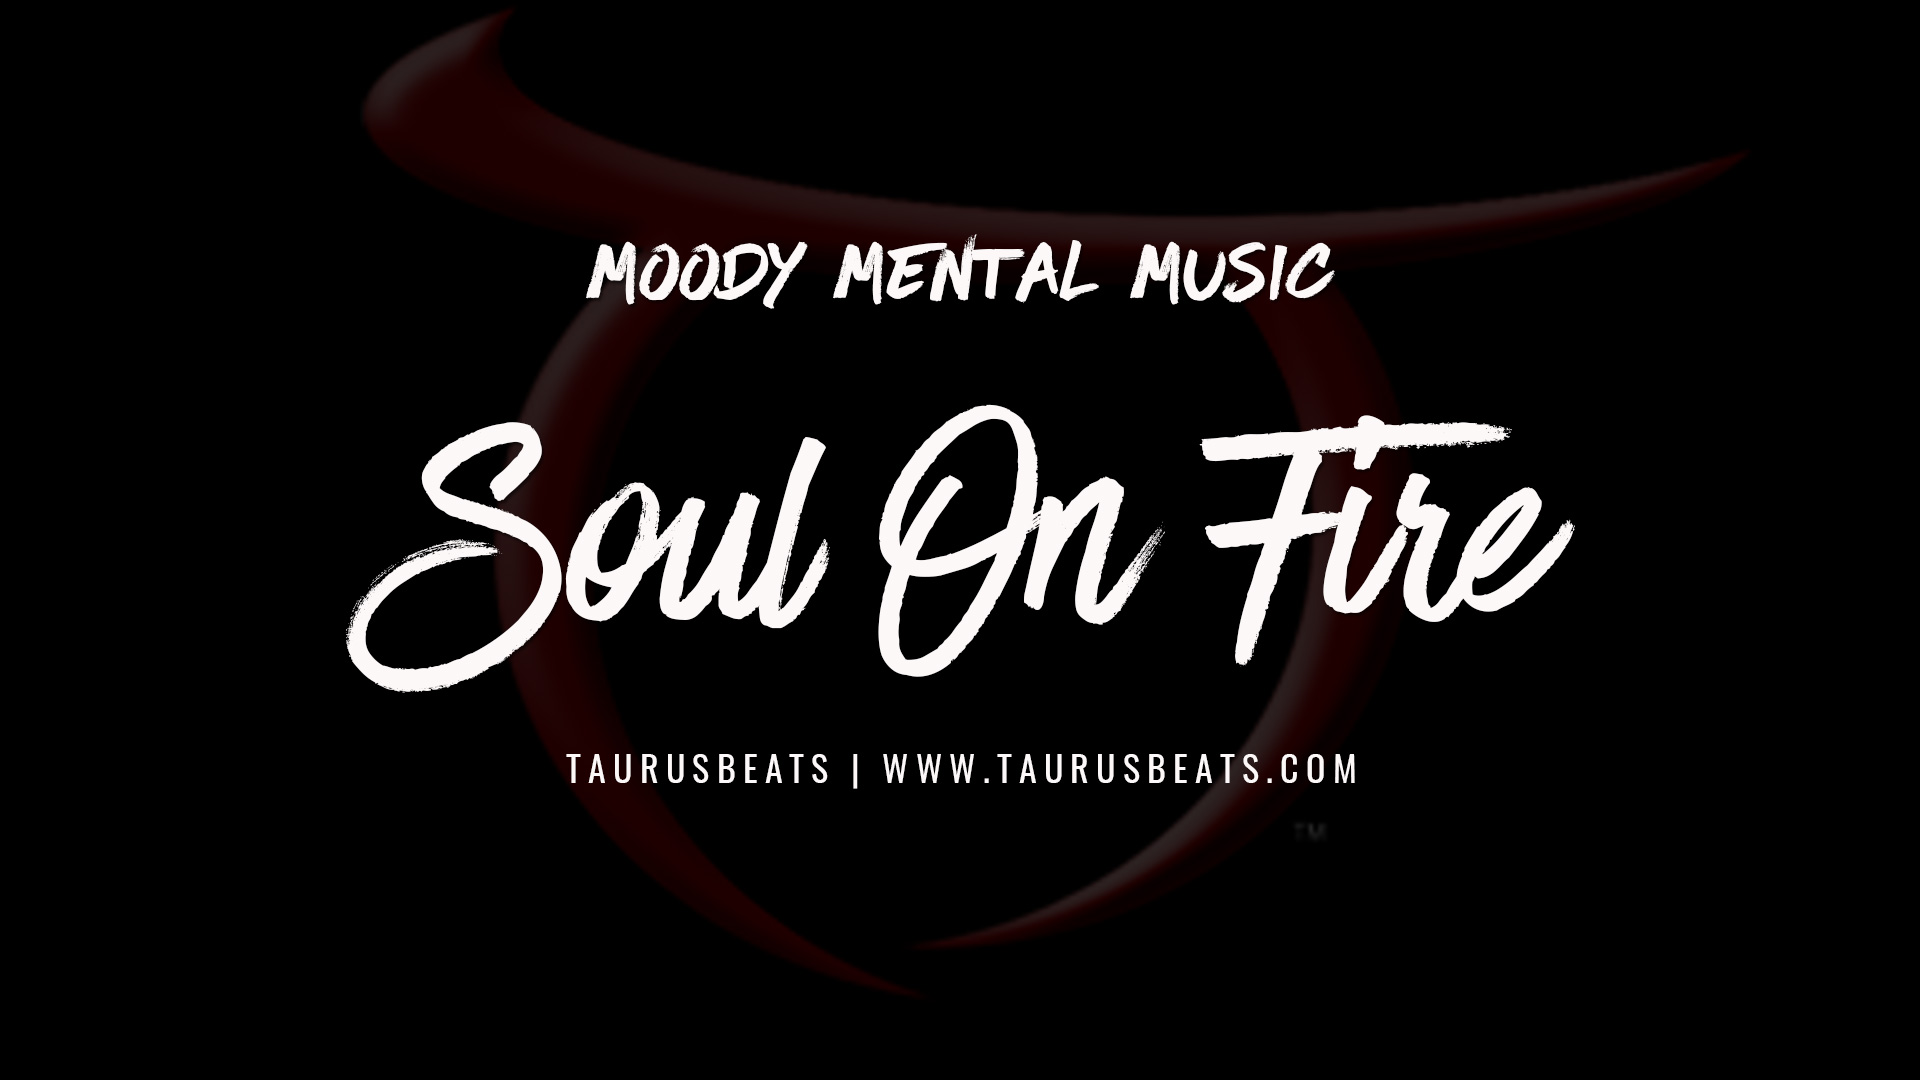 image for Soul On Fire